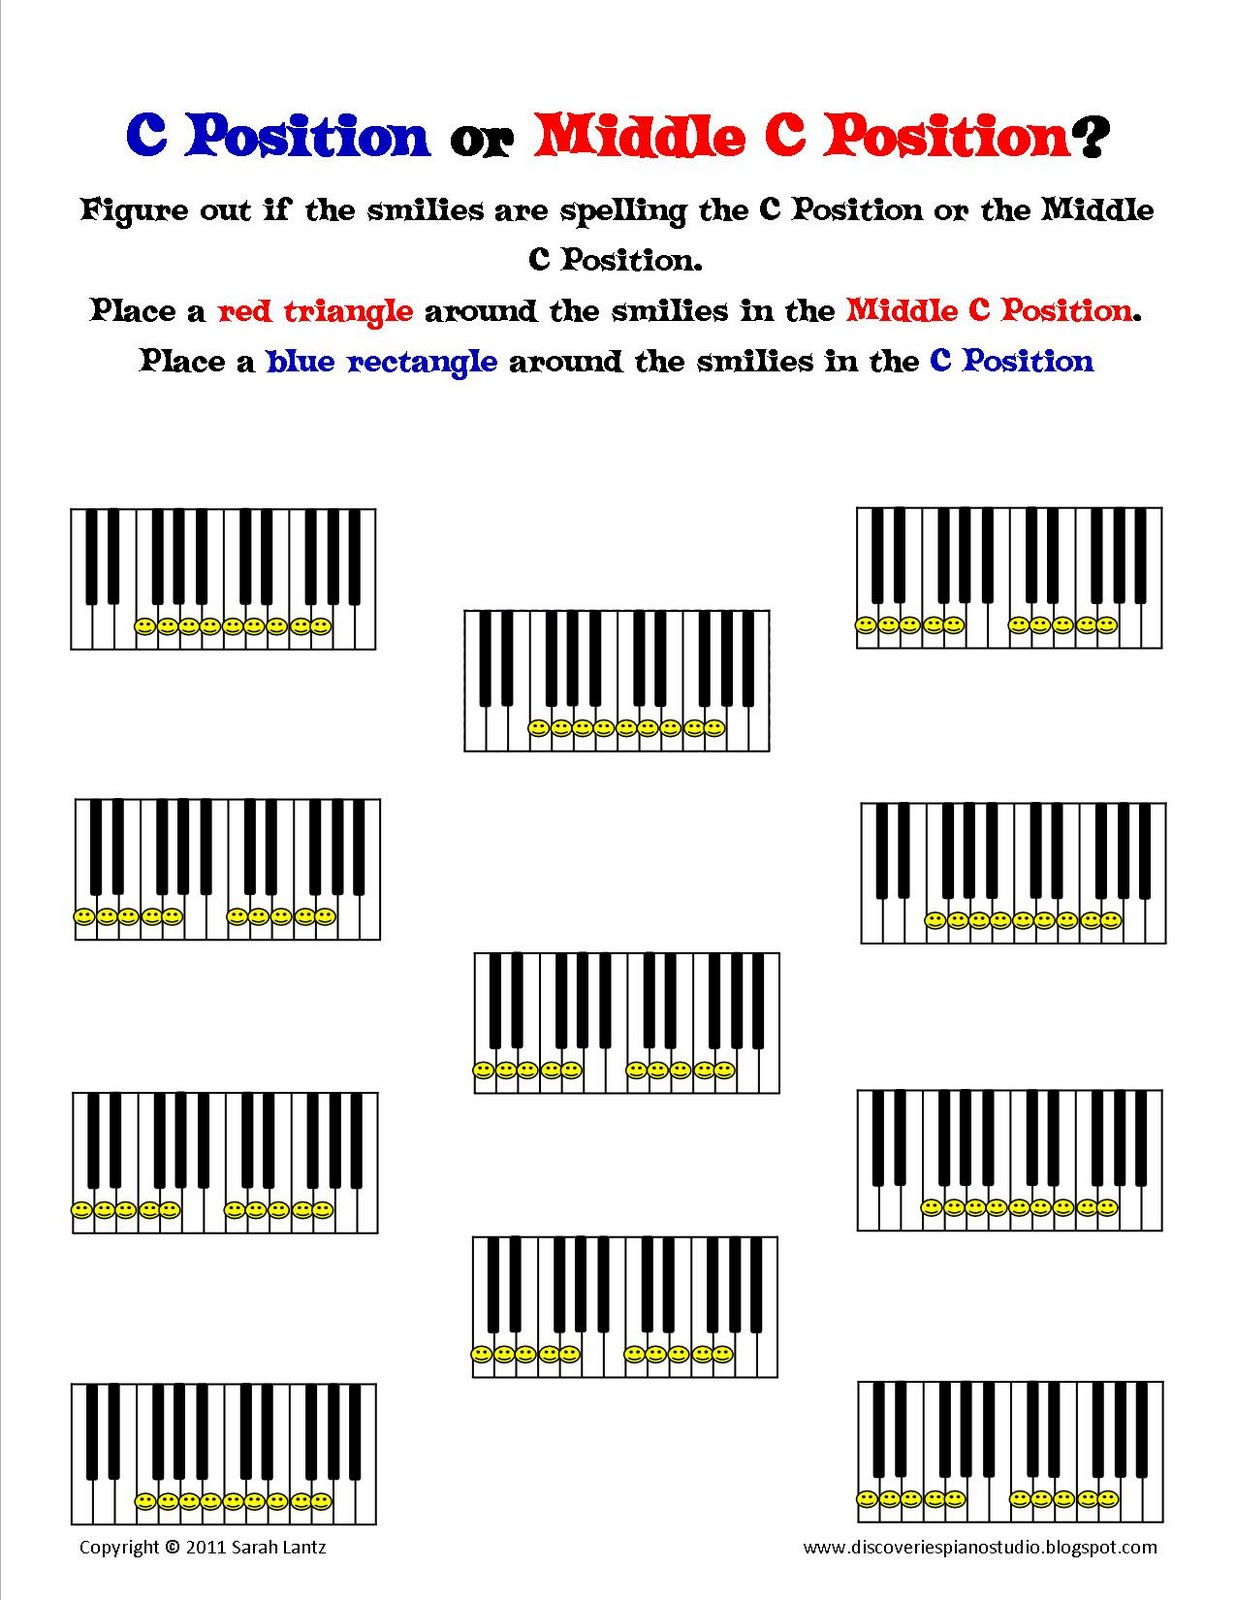 Discoveries Piano Studio New Worksheets To Help Learn C And Middle C Positions